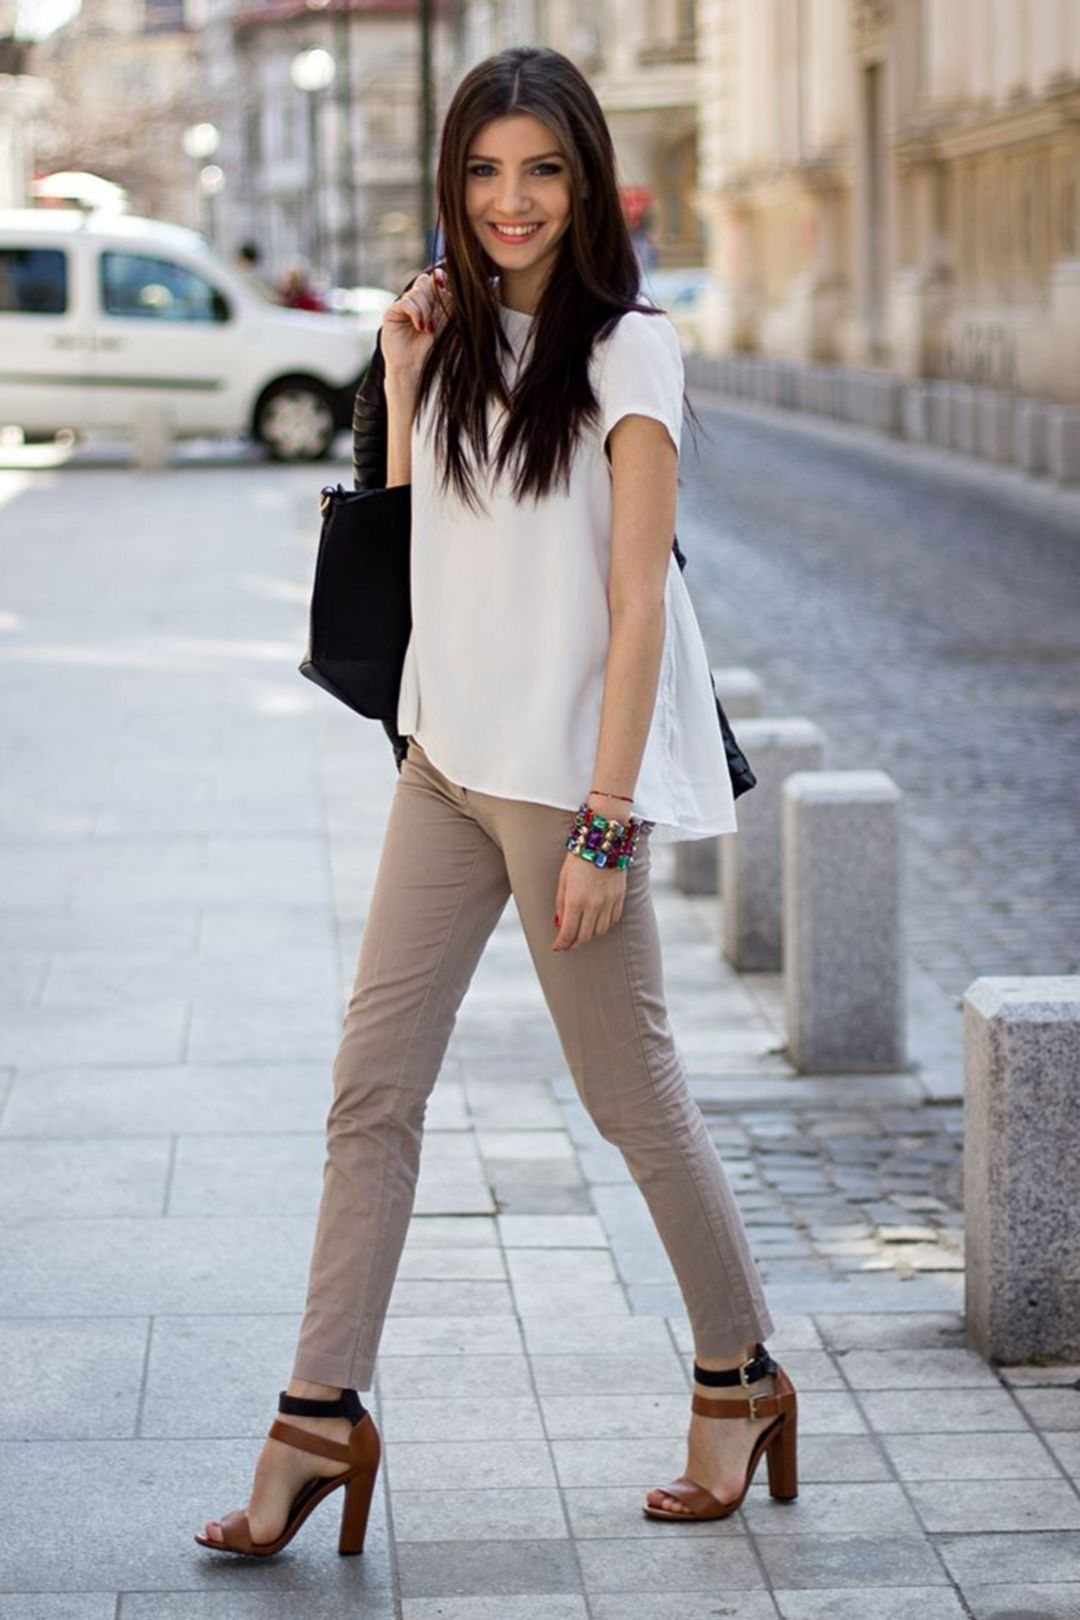 40 Smart Casual Fashion Ideas That Make Your Look Elegant ...